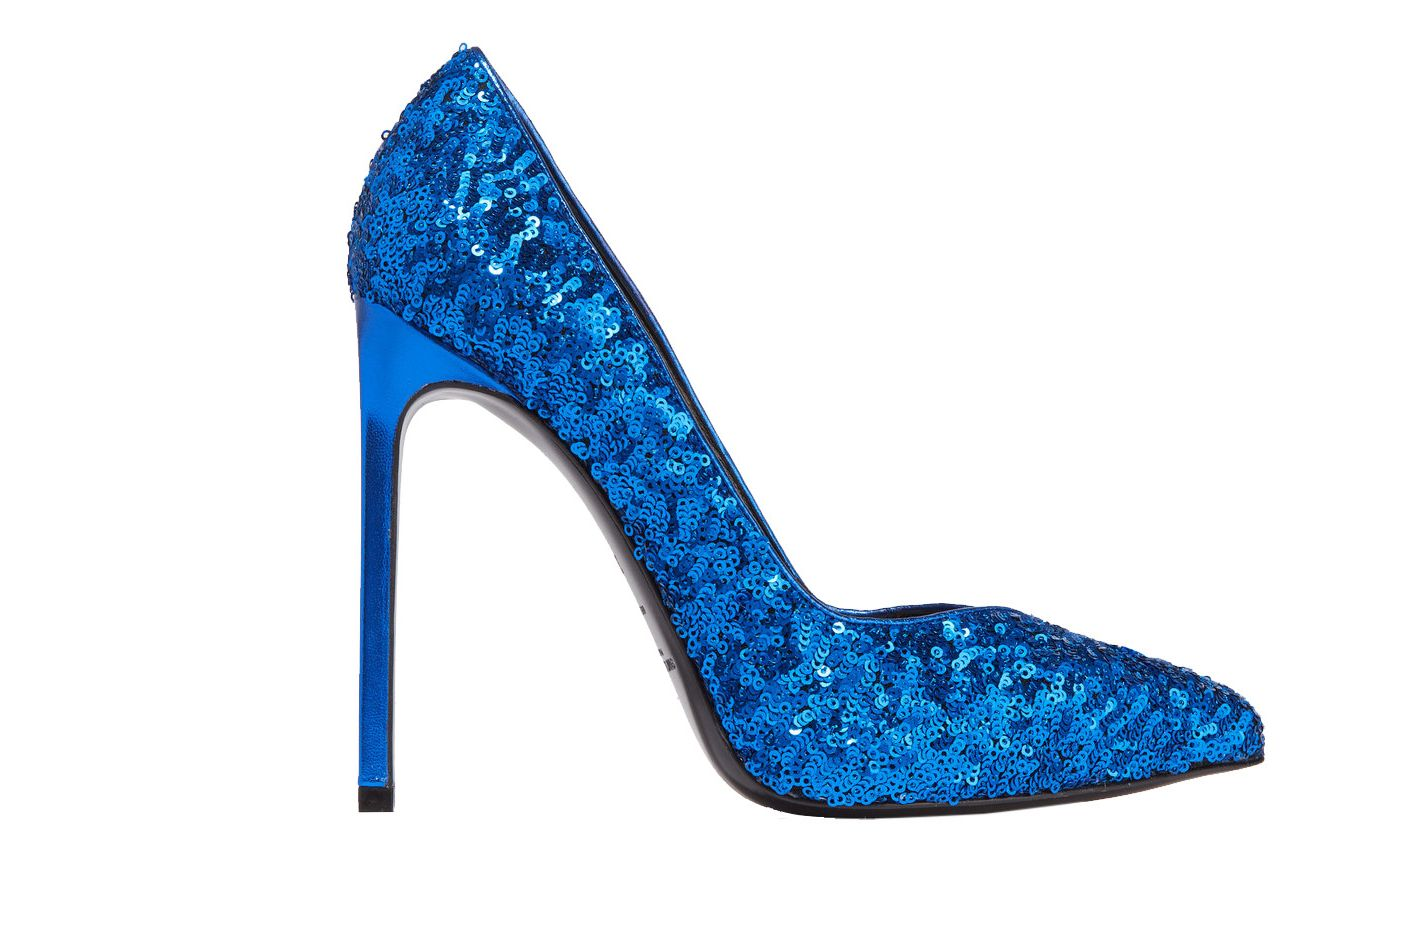 Saint Laurent Sequin Leather Pumps